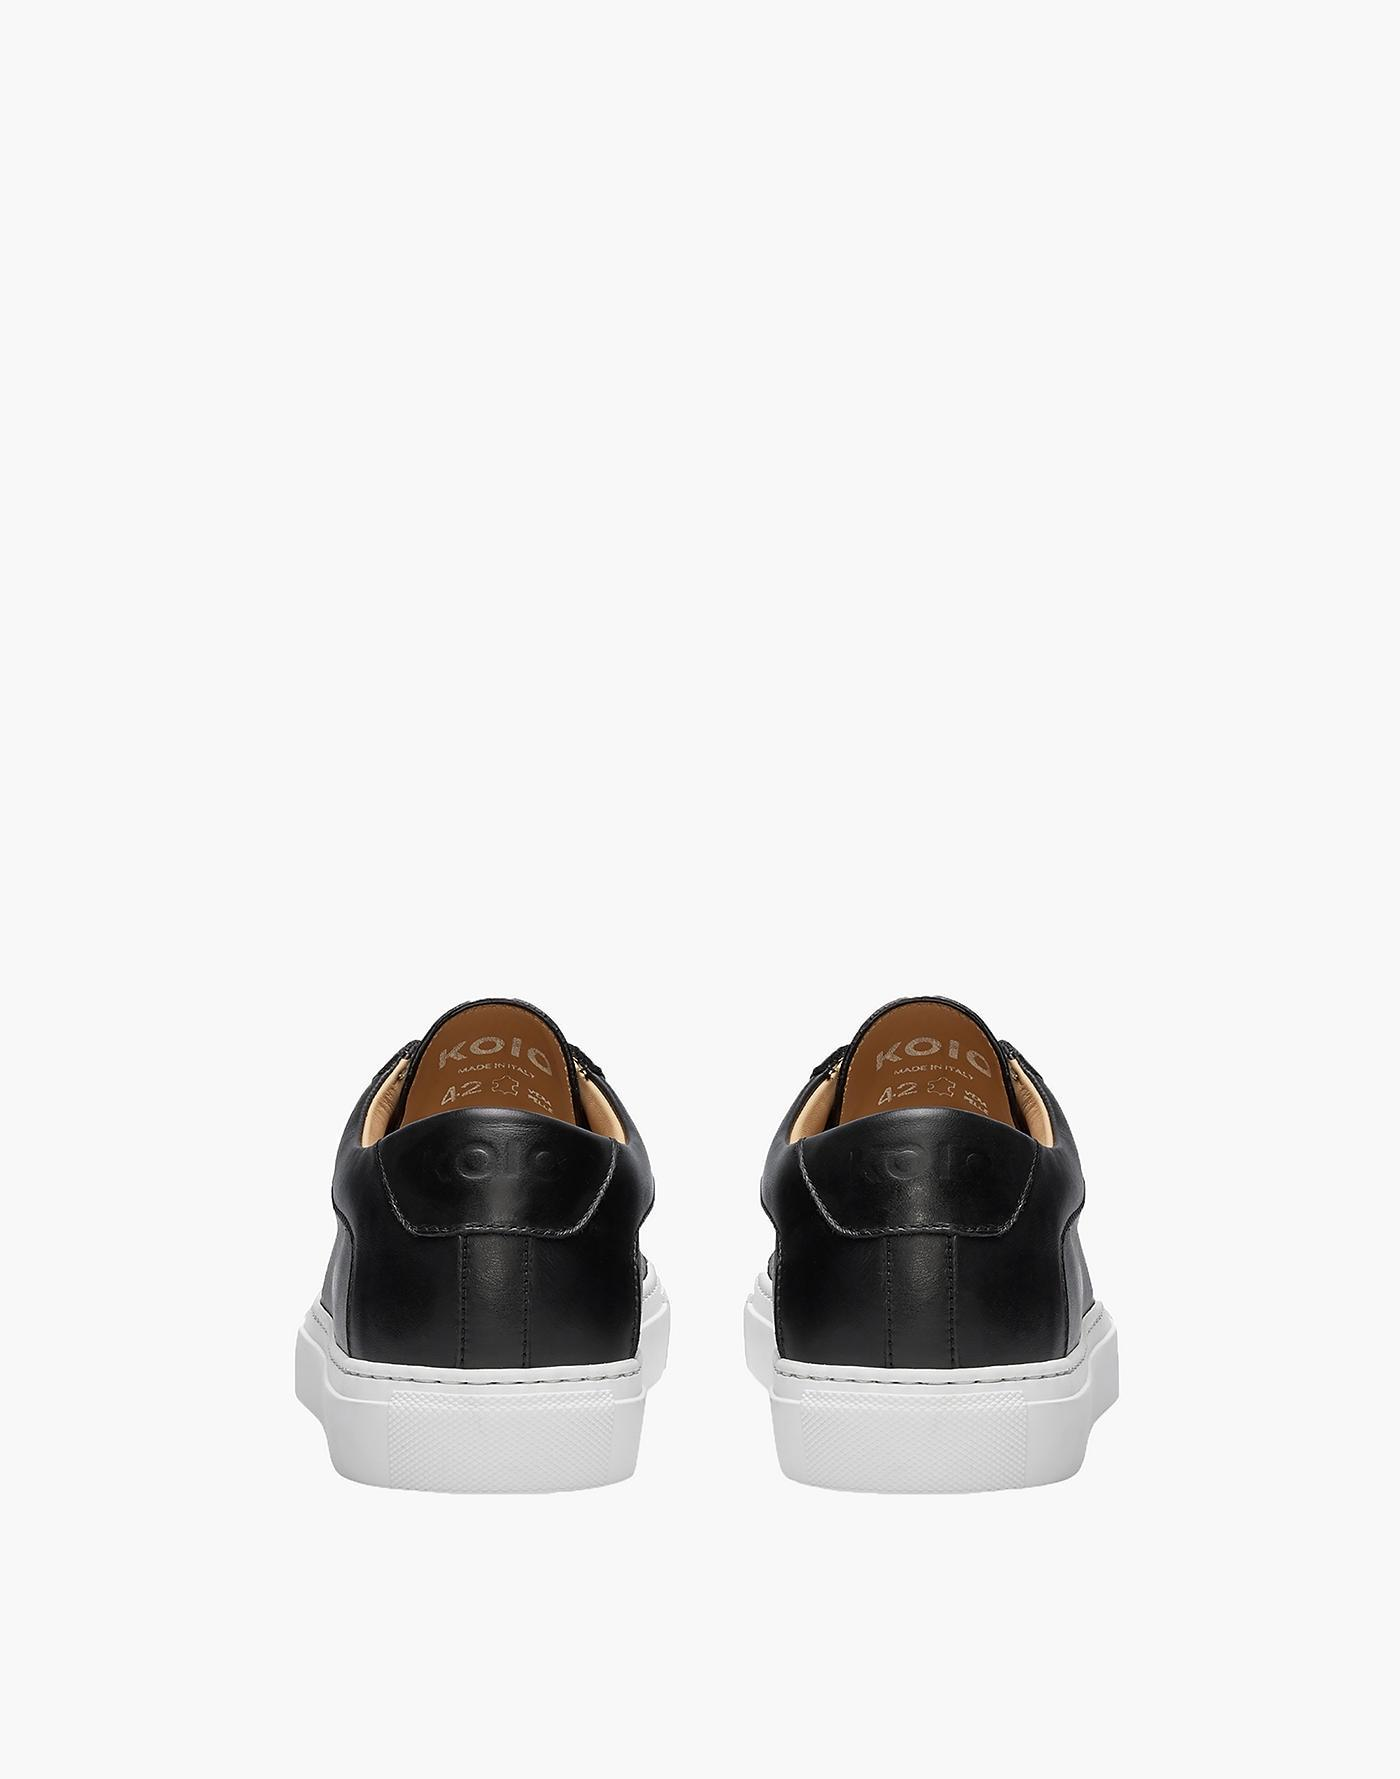 Madewell Koio Capri Onyx Low-top Sneakers In Black Leather